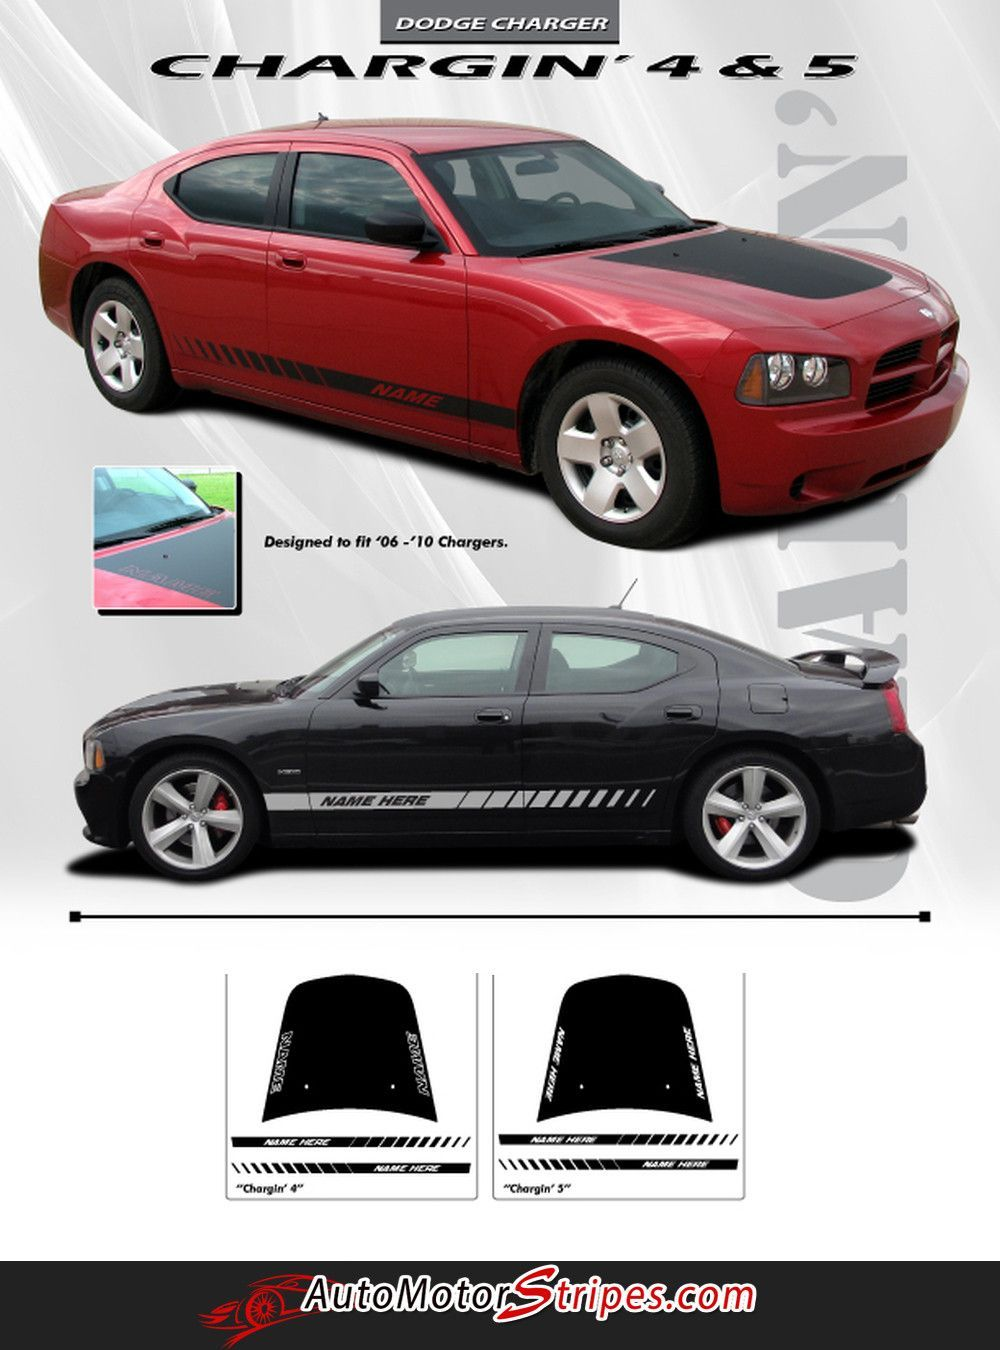 2006 Dodge Charger Decals : dodge, charger, decals, Dodge, Charger, Classic